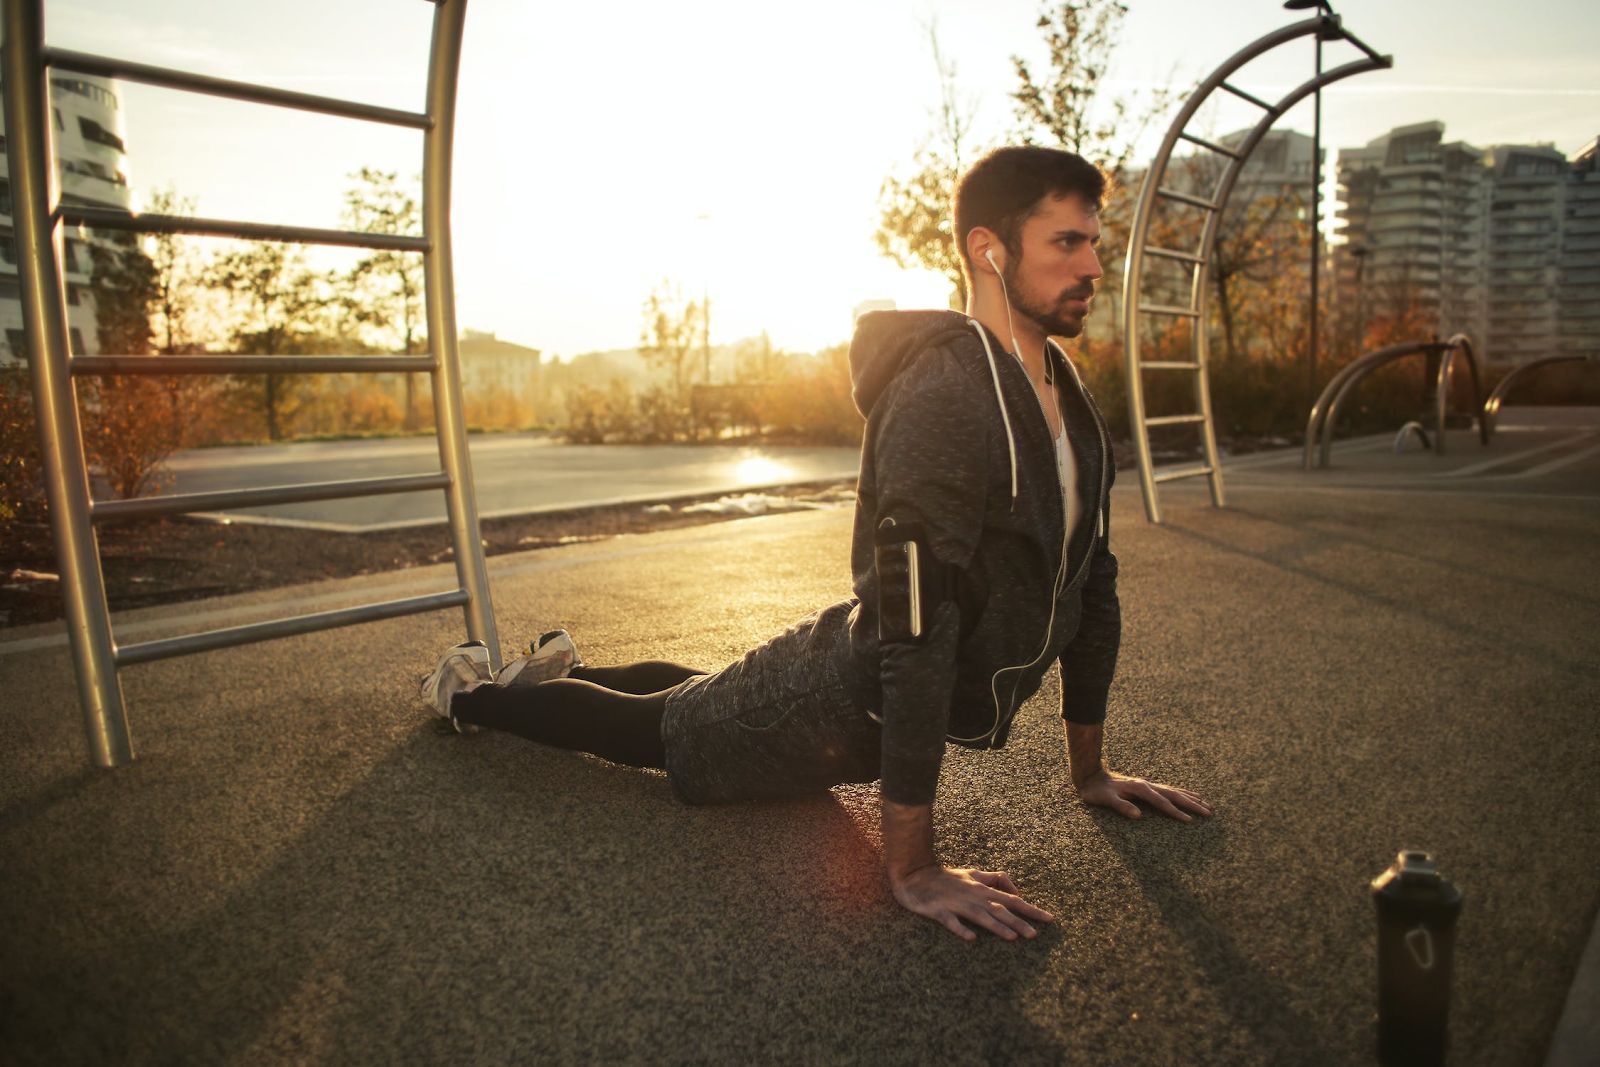 Man performing quadruped yoga poses in an effort to incorporate them into his daily workout.